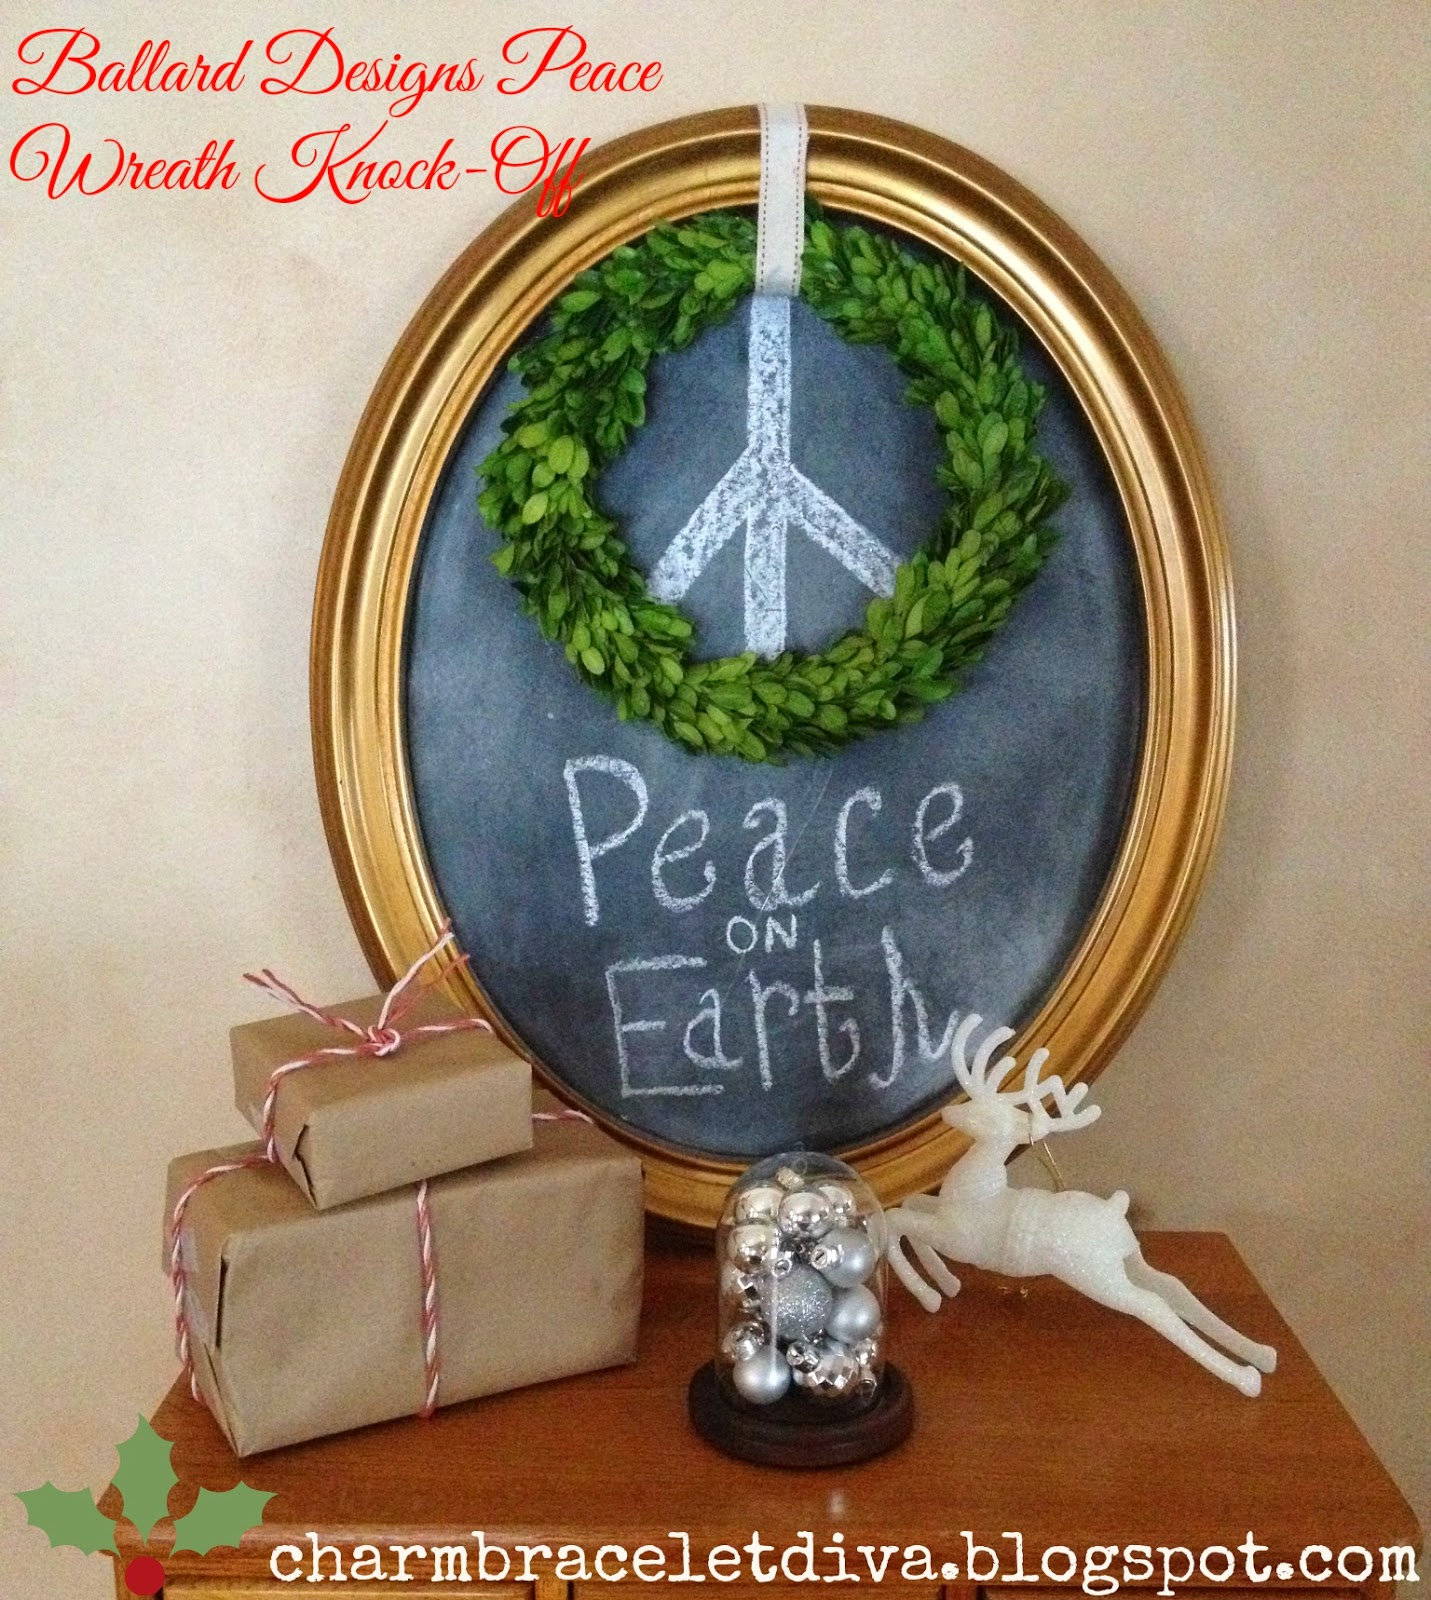 ballard designs credit card bamboo bathroom stool our hopeful home diy ballard christmas peace wreath knock off today i want to share with